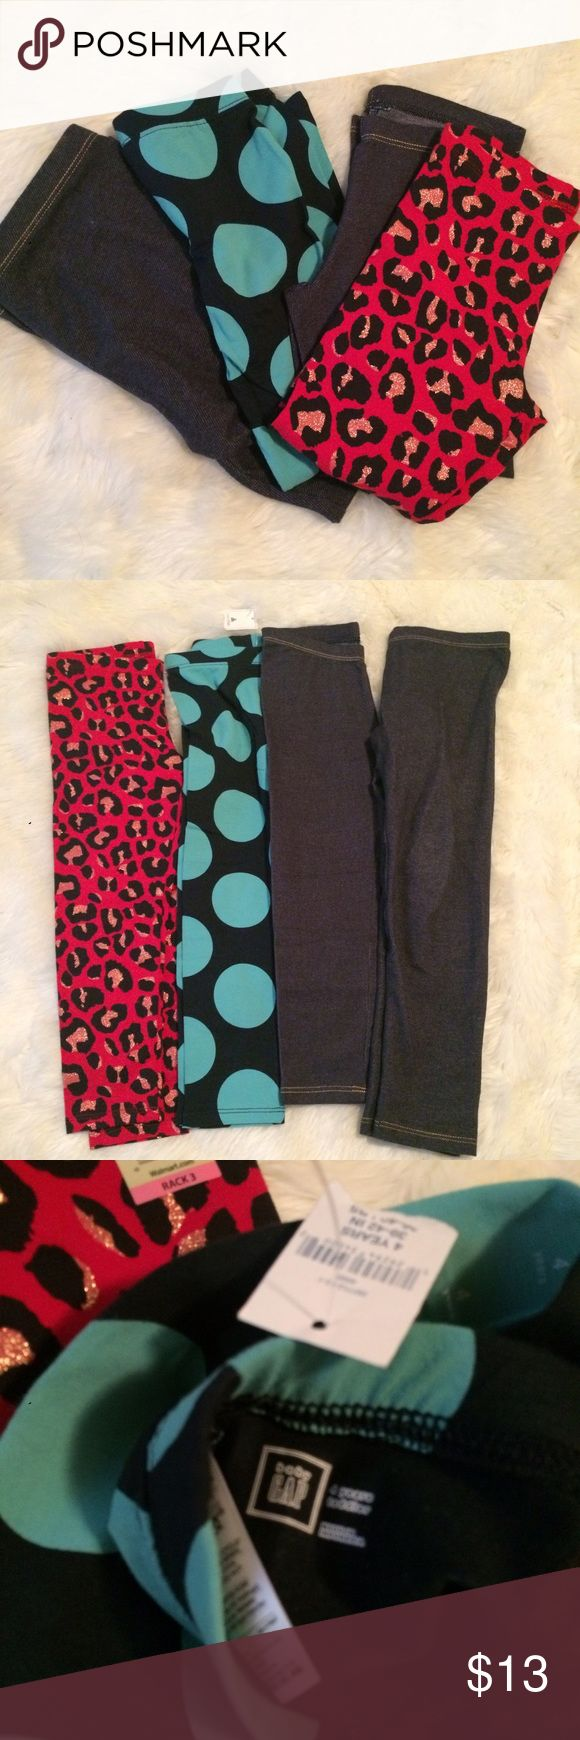 New 4 pairs of leggings toddler 4t/5T All brand new with and without tags #gap #turquoise #cheetah #leggings #pants #bundle #kids #girlsbundle #4t #5t #new #mixedbrands GAP Bottoms Leggings